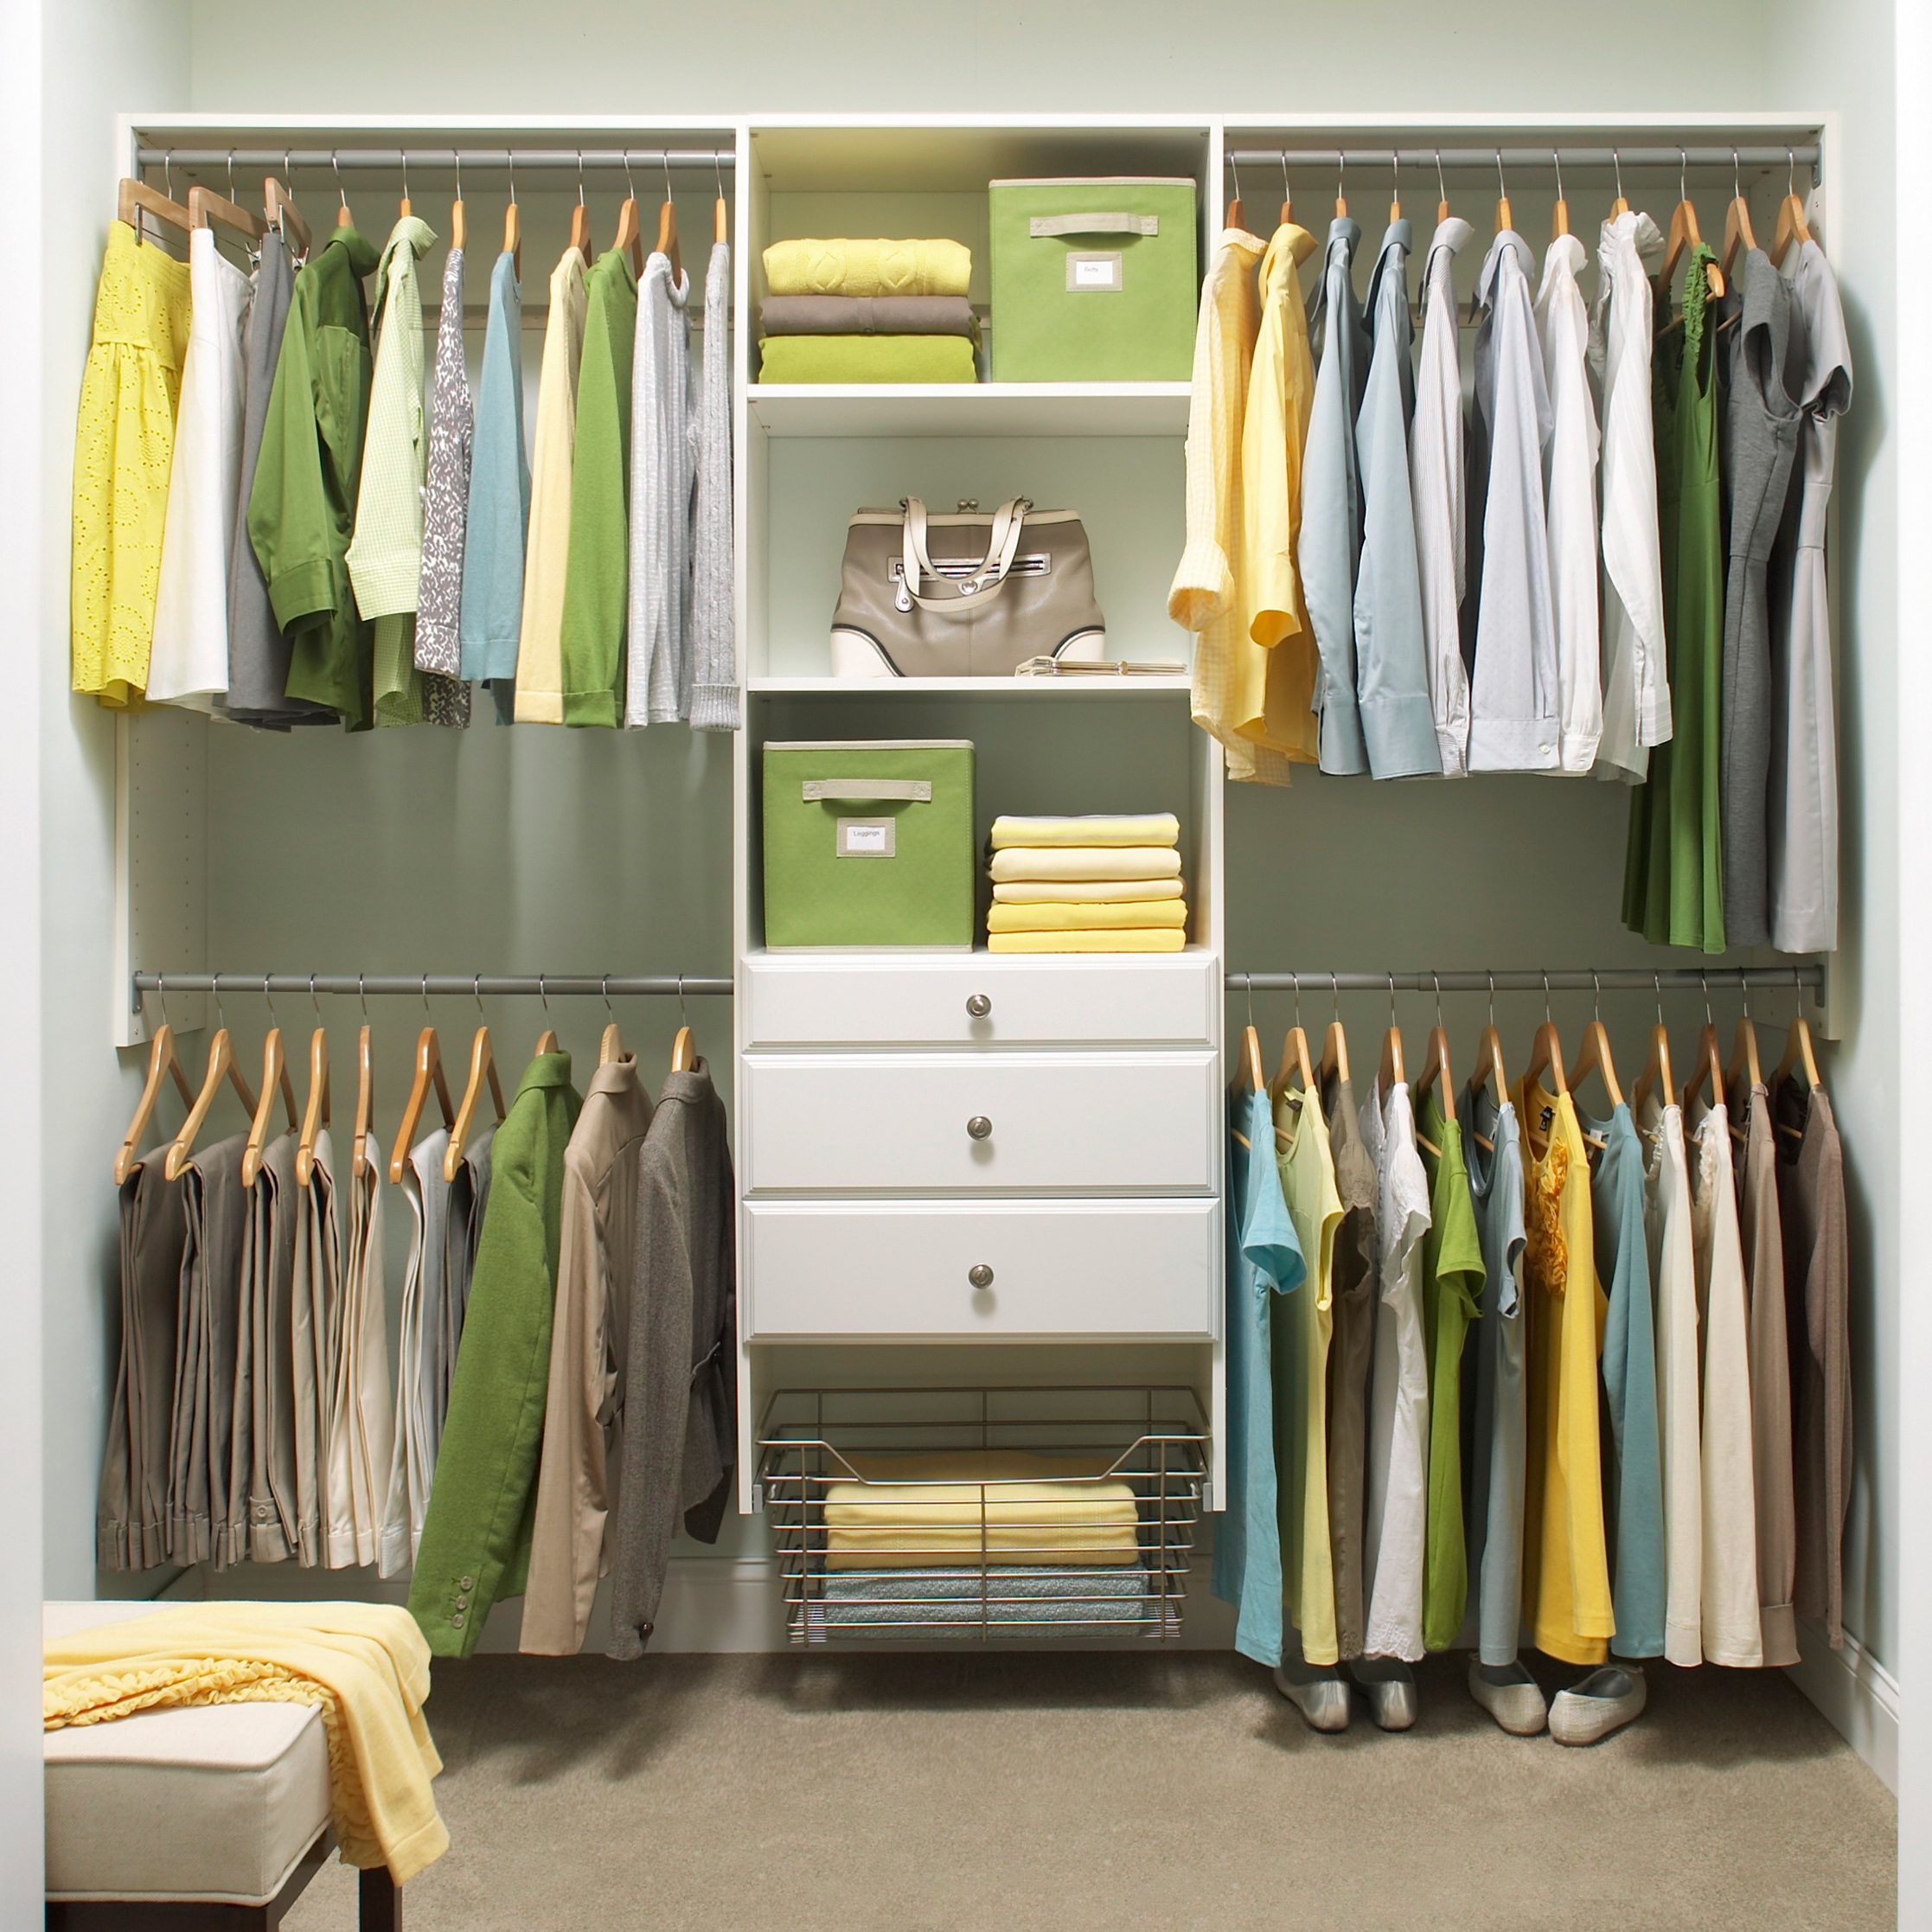 white reviews systems b organizer closetmaid easy organization ventilated wire track n closet storage